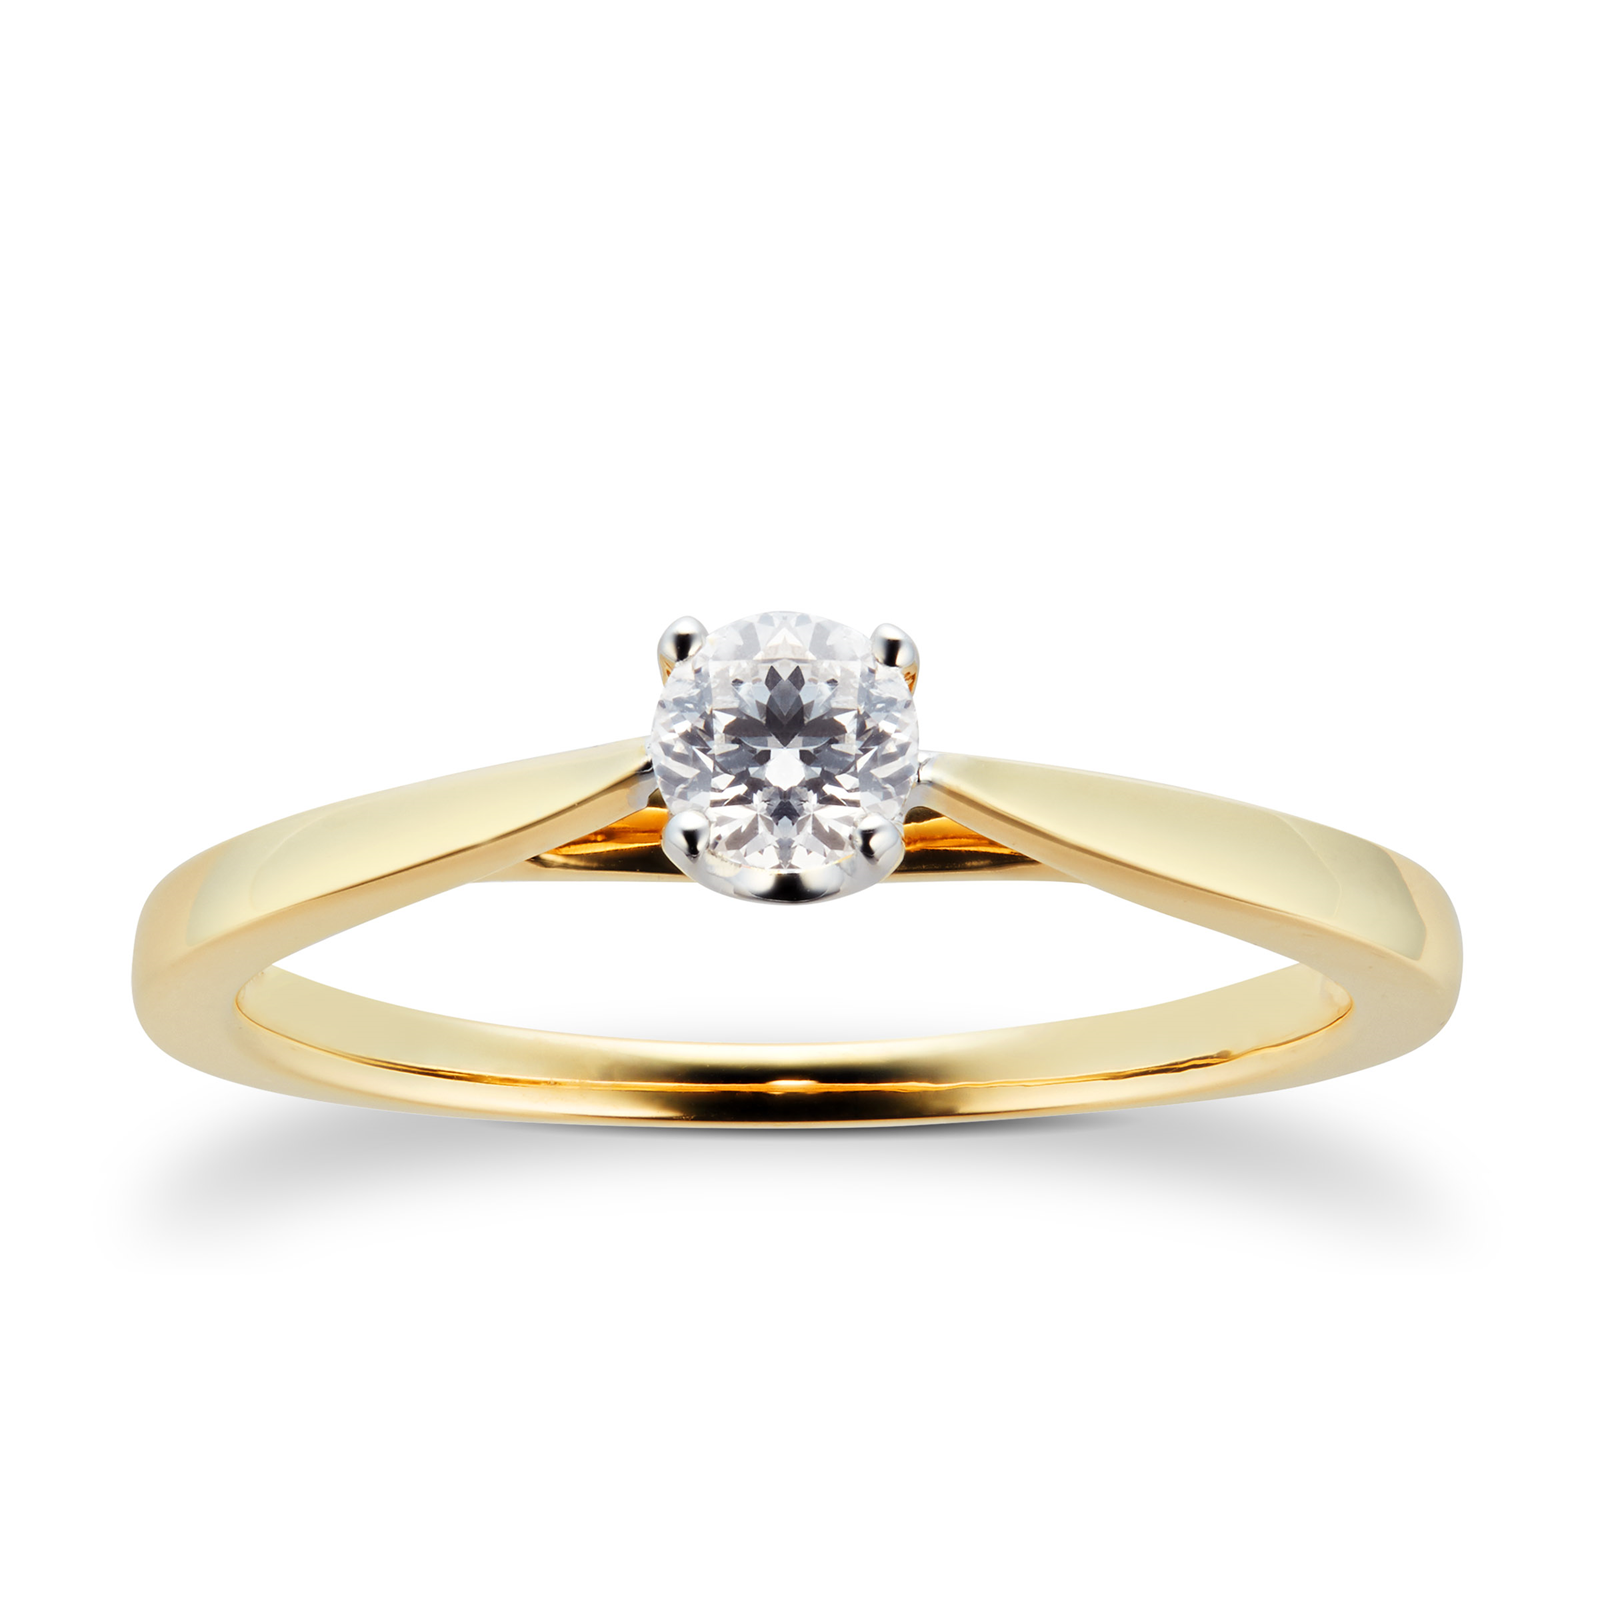 18ct Yellow Gold Brilliant Cut 0.25 Carat 88 Facet Diamond Ring - Ring Size J